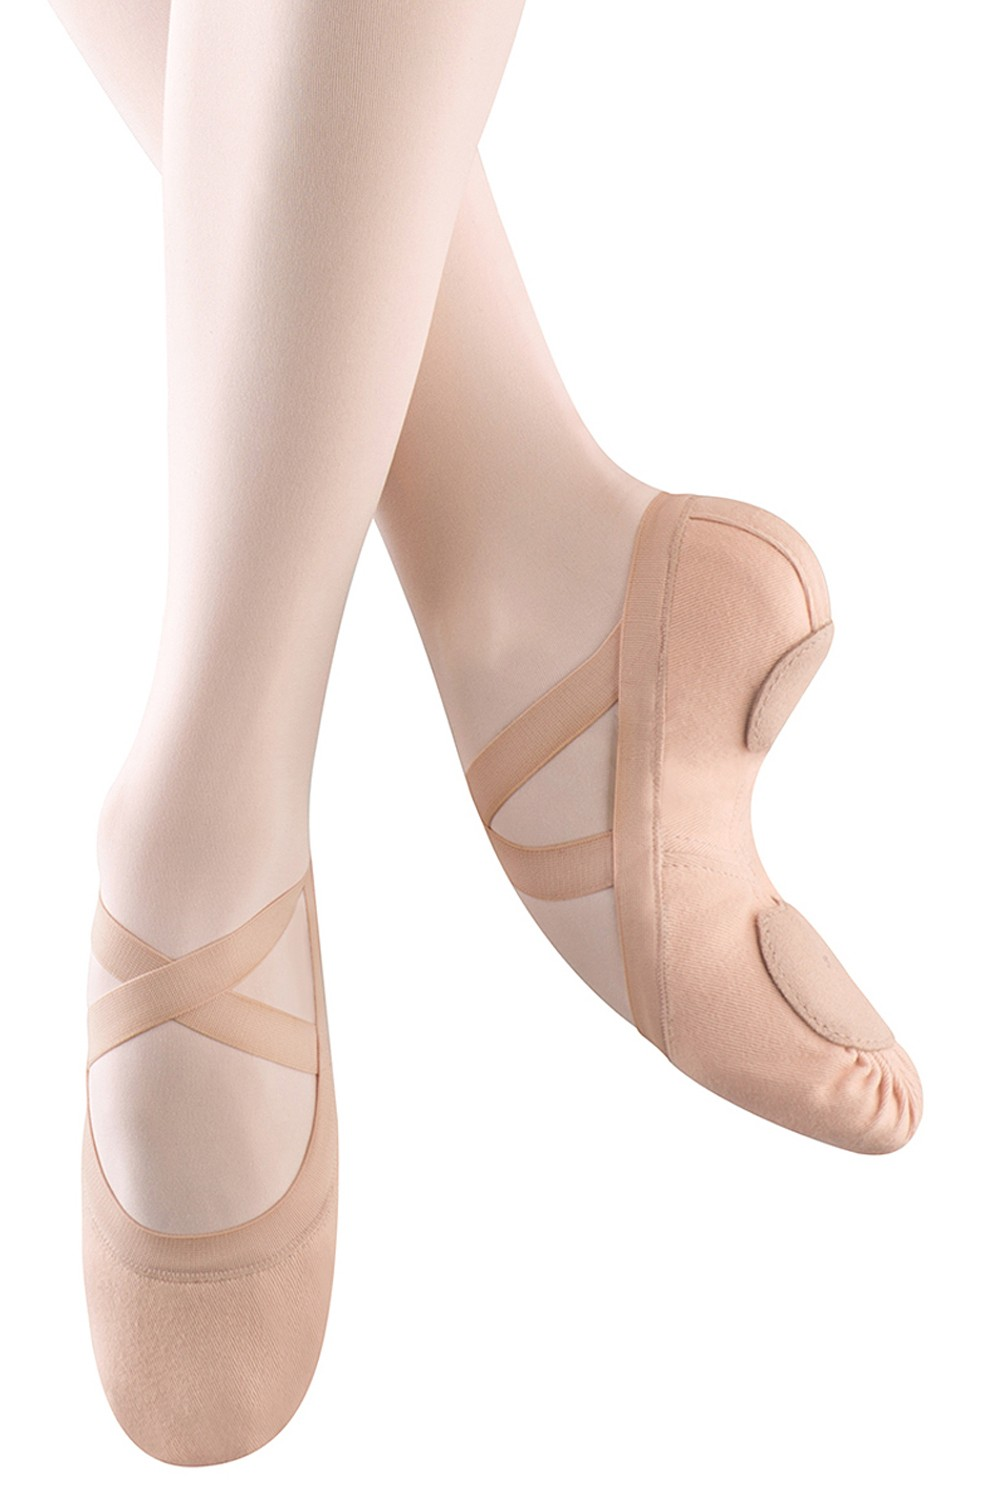 Synchrony - Niñas Girl's Ballet Shoes